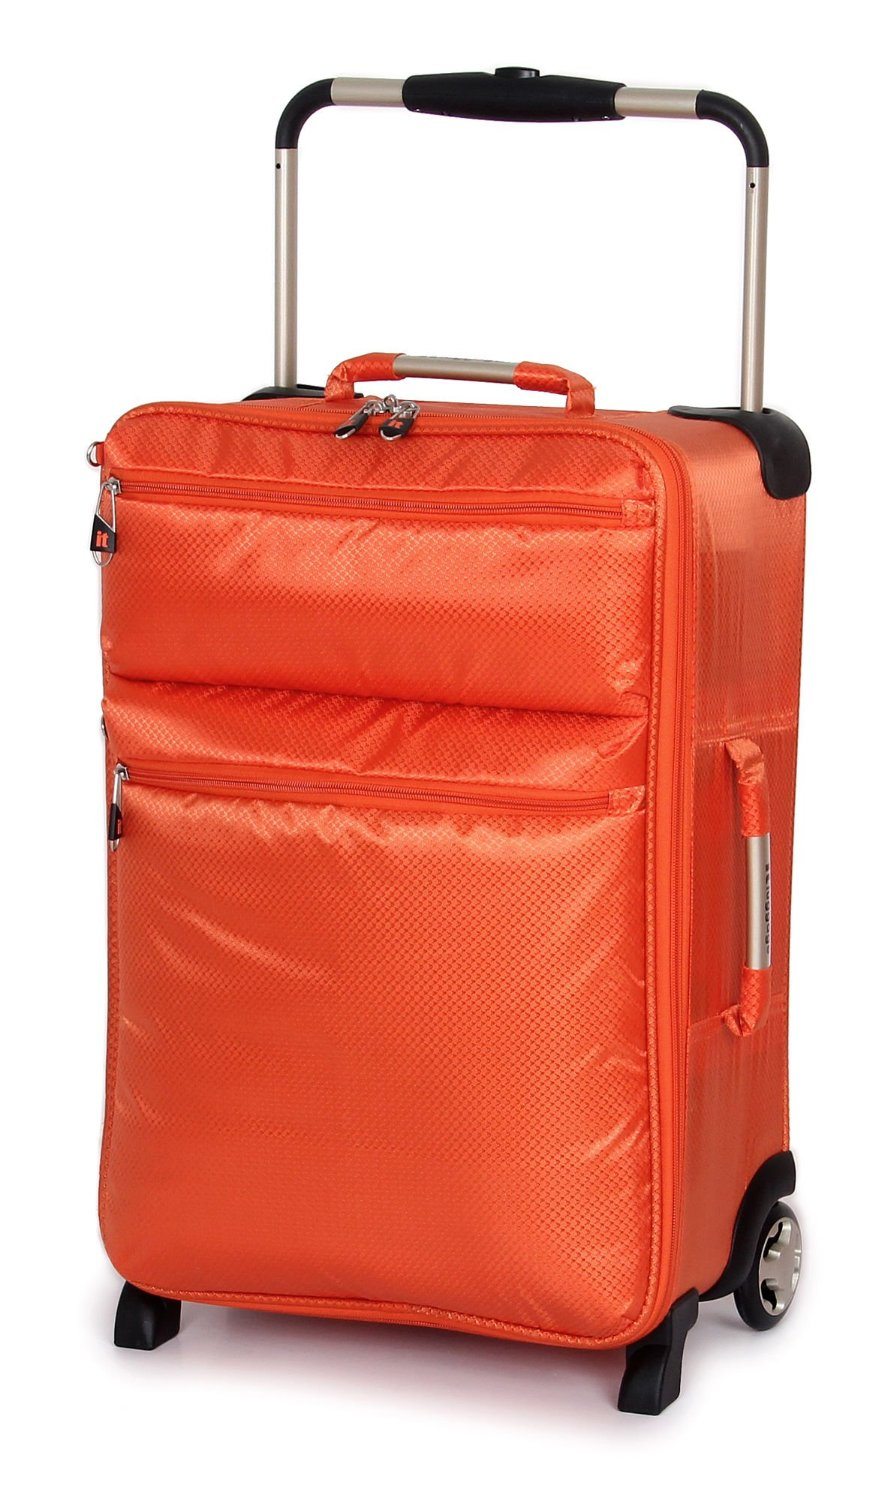 It Luggage Bag | Luggage And Suitcases